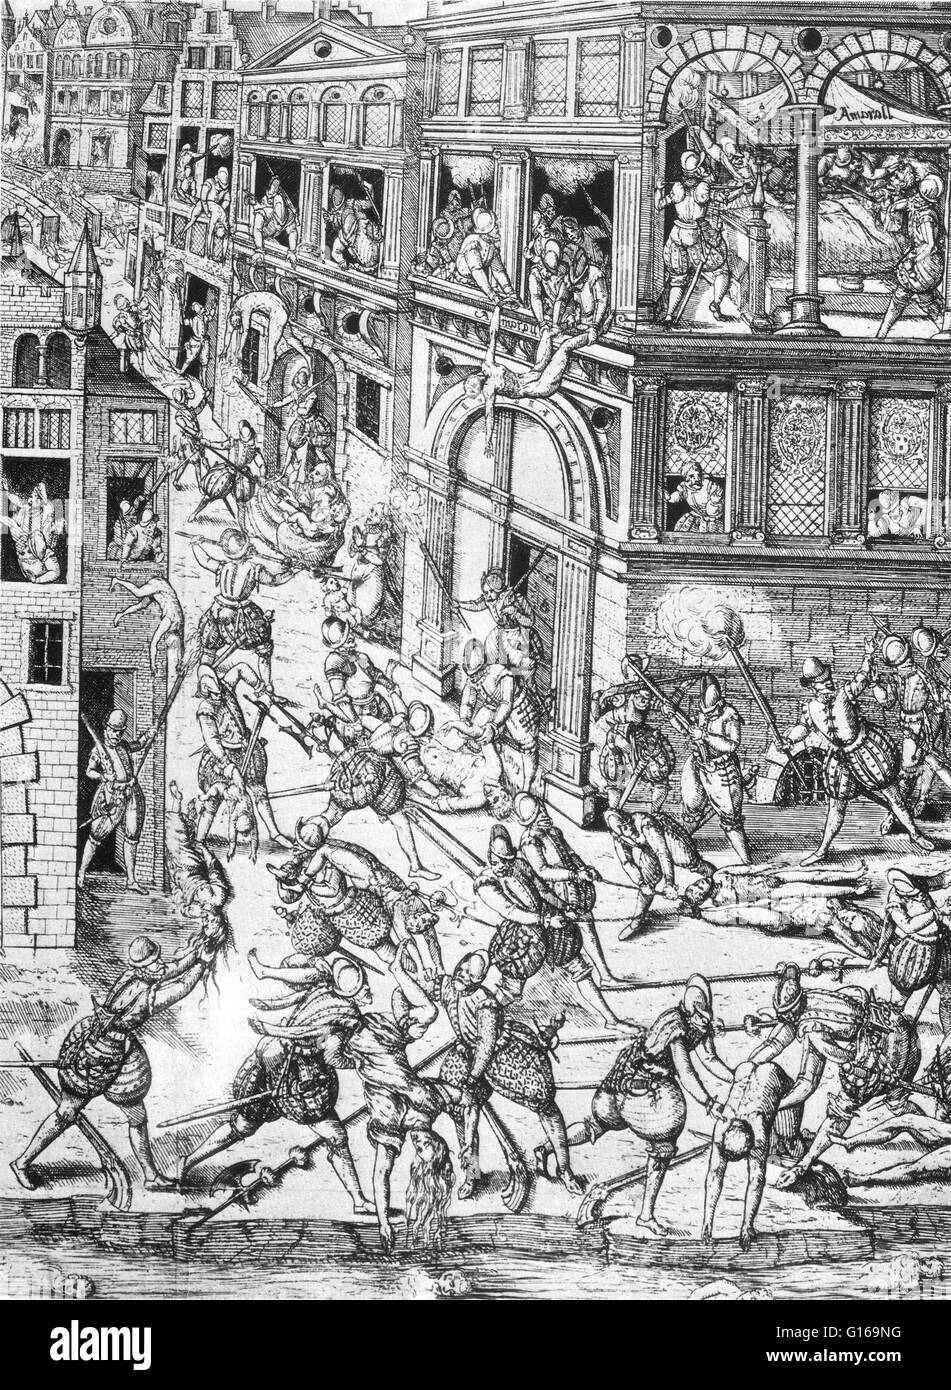 The St. Bartholomew's Day massacre in 1572 was a targeted group of assassinations, followed by a wave of Roman Catholic mob violence, both directed against the Huguenots, during the French Wars of Religion. Traditionally believed to have been instigated by Catherine de' Medici. The massacre began on August 23, 1572, two days after the attempted assassination of Admiral Gaspard de Coligny, the military and political leader of the Huguenots. The king ordered the killing of a group of Huguenot leaders, including Coligny, and the slaughter spread throughout Paris. Lasting several weeks, the massac Stock Photo